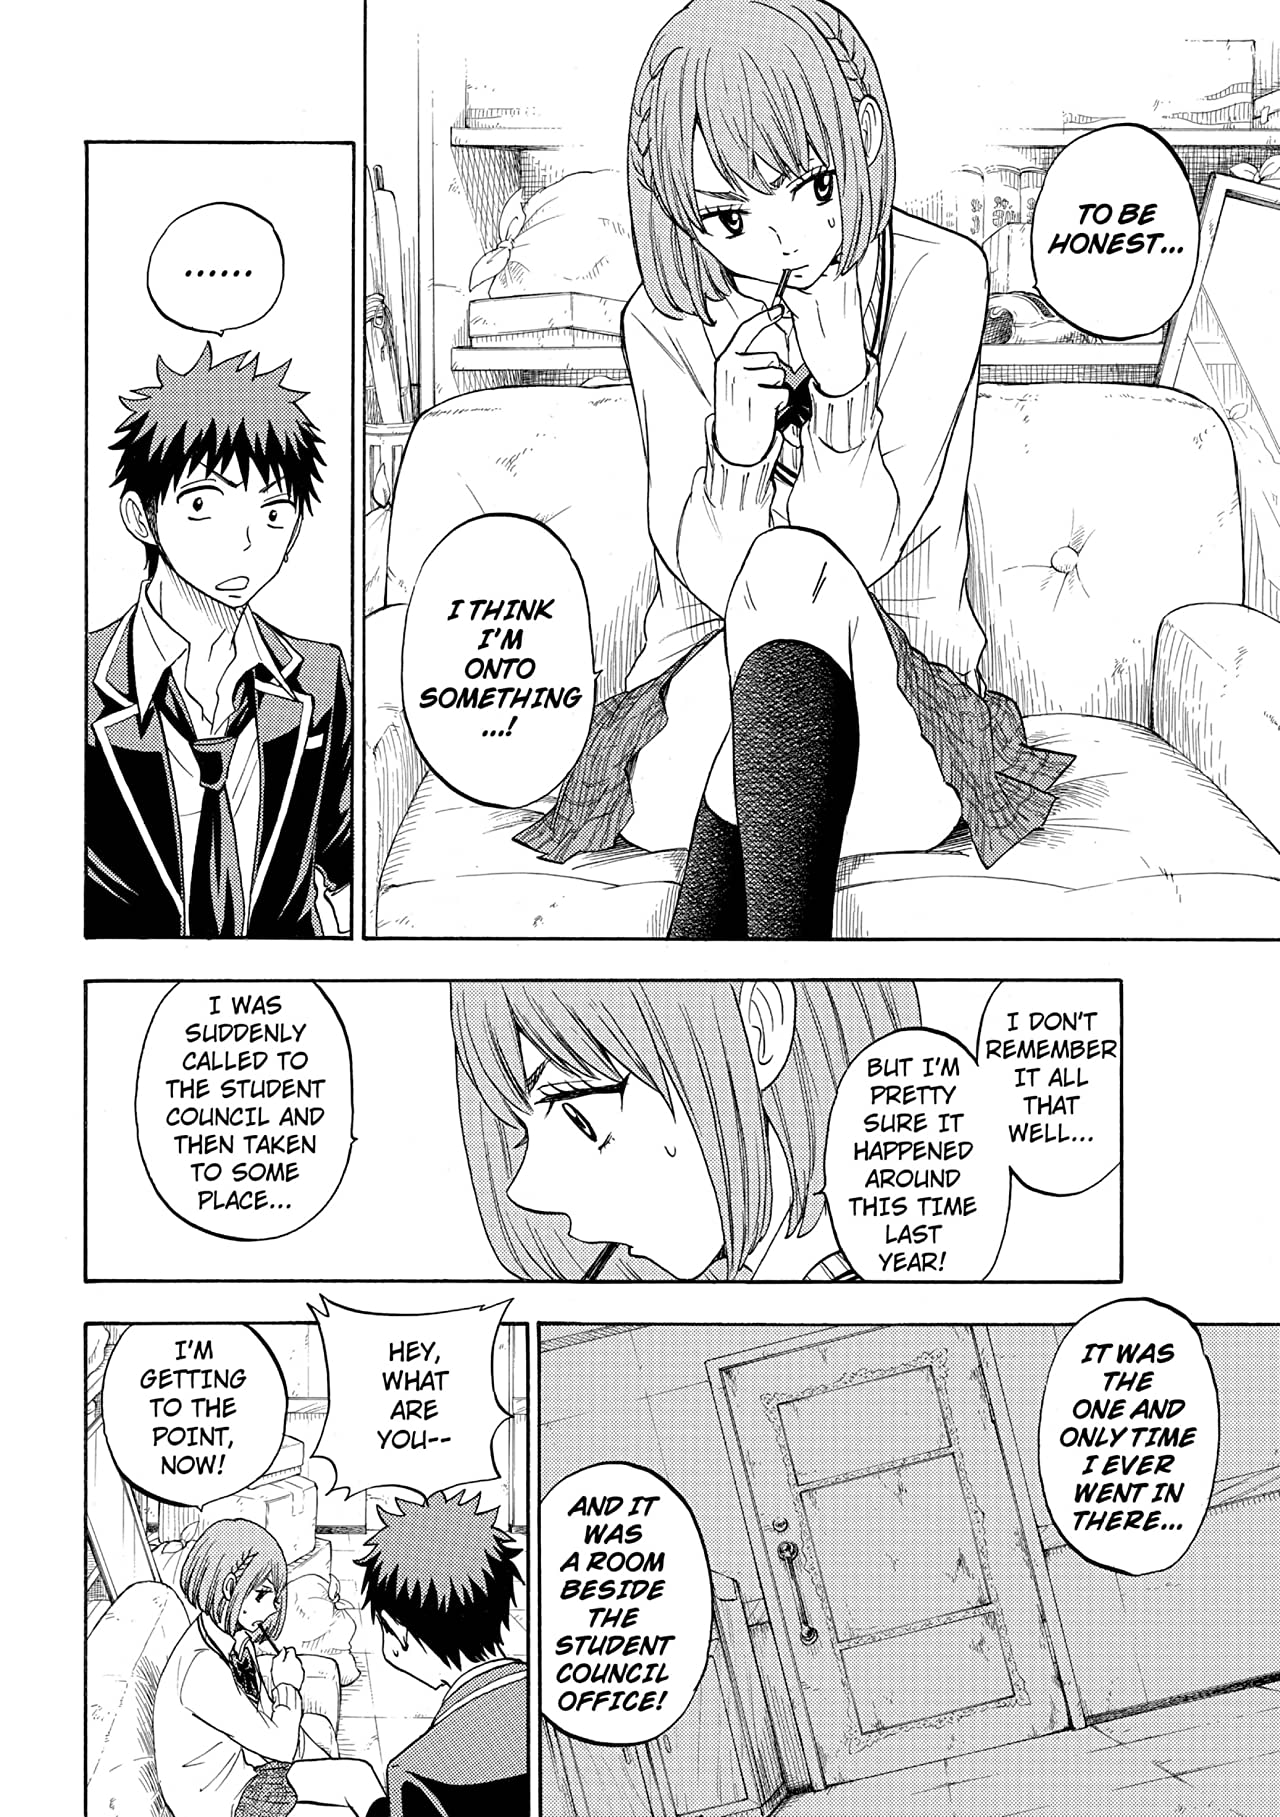 Yamada-kun and the Seven Witches #76